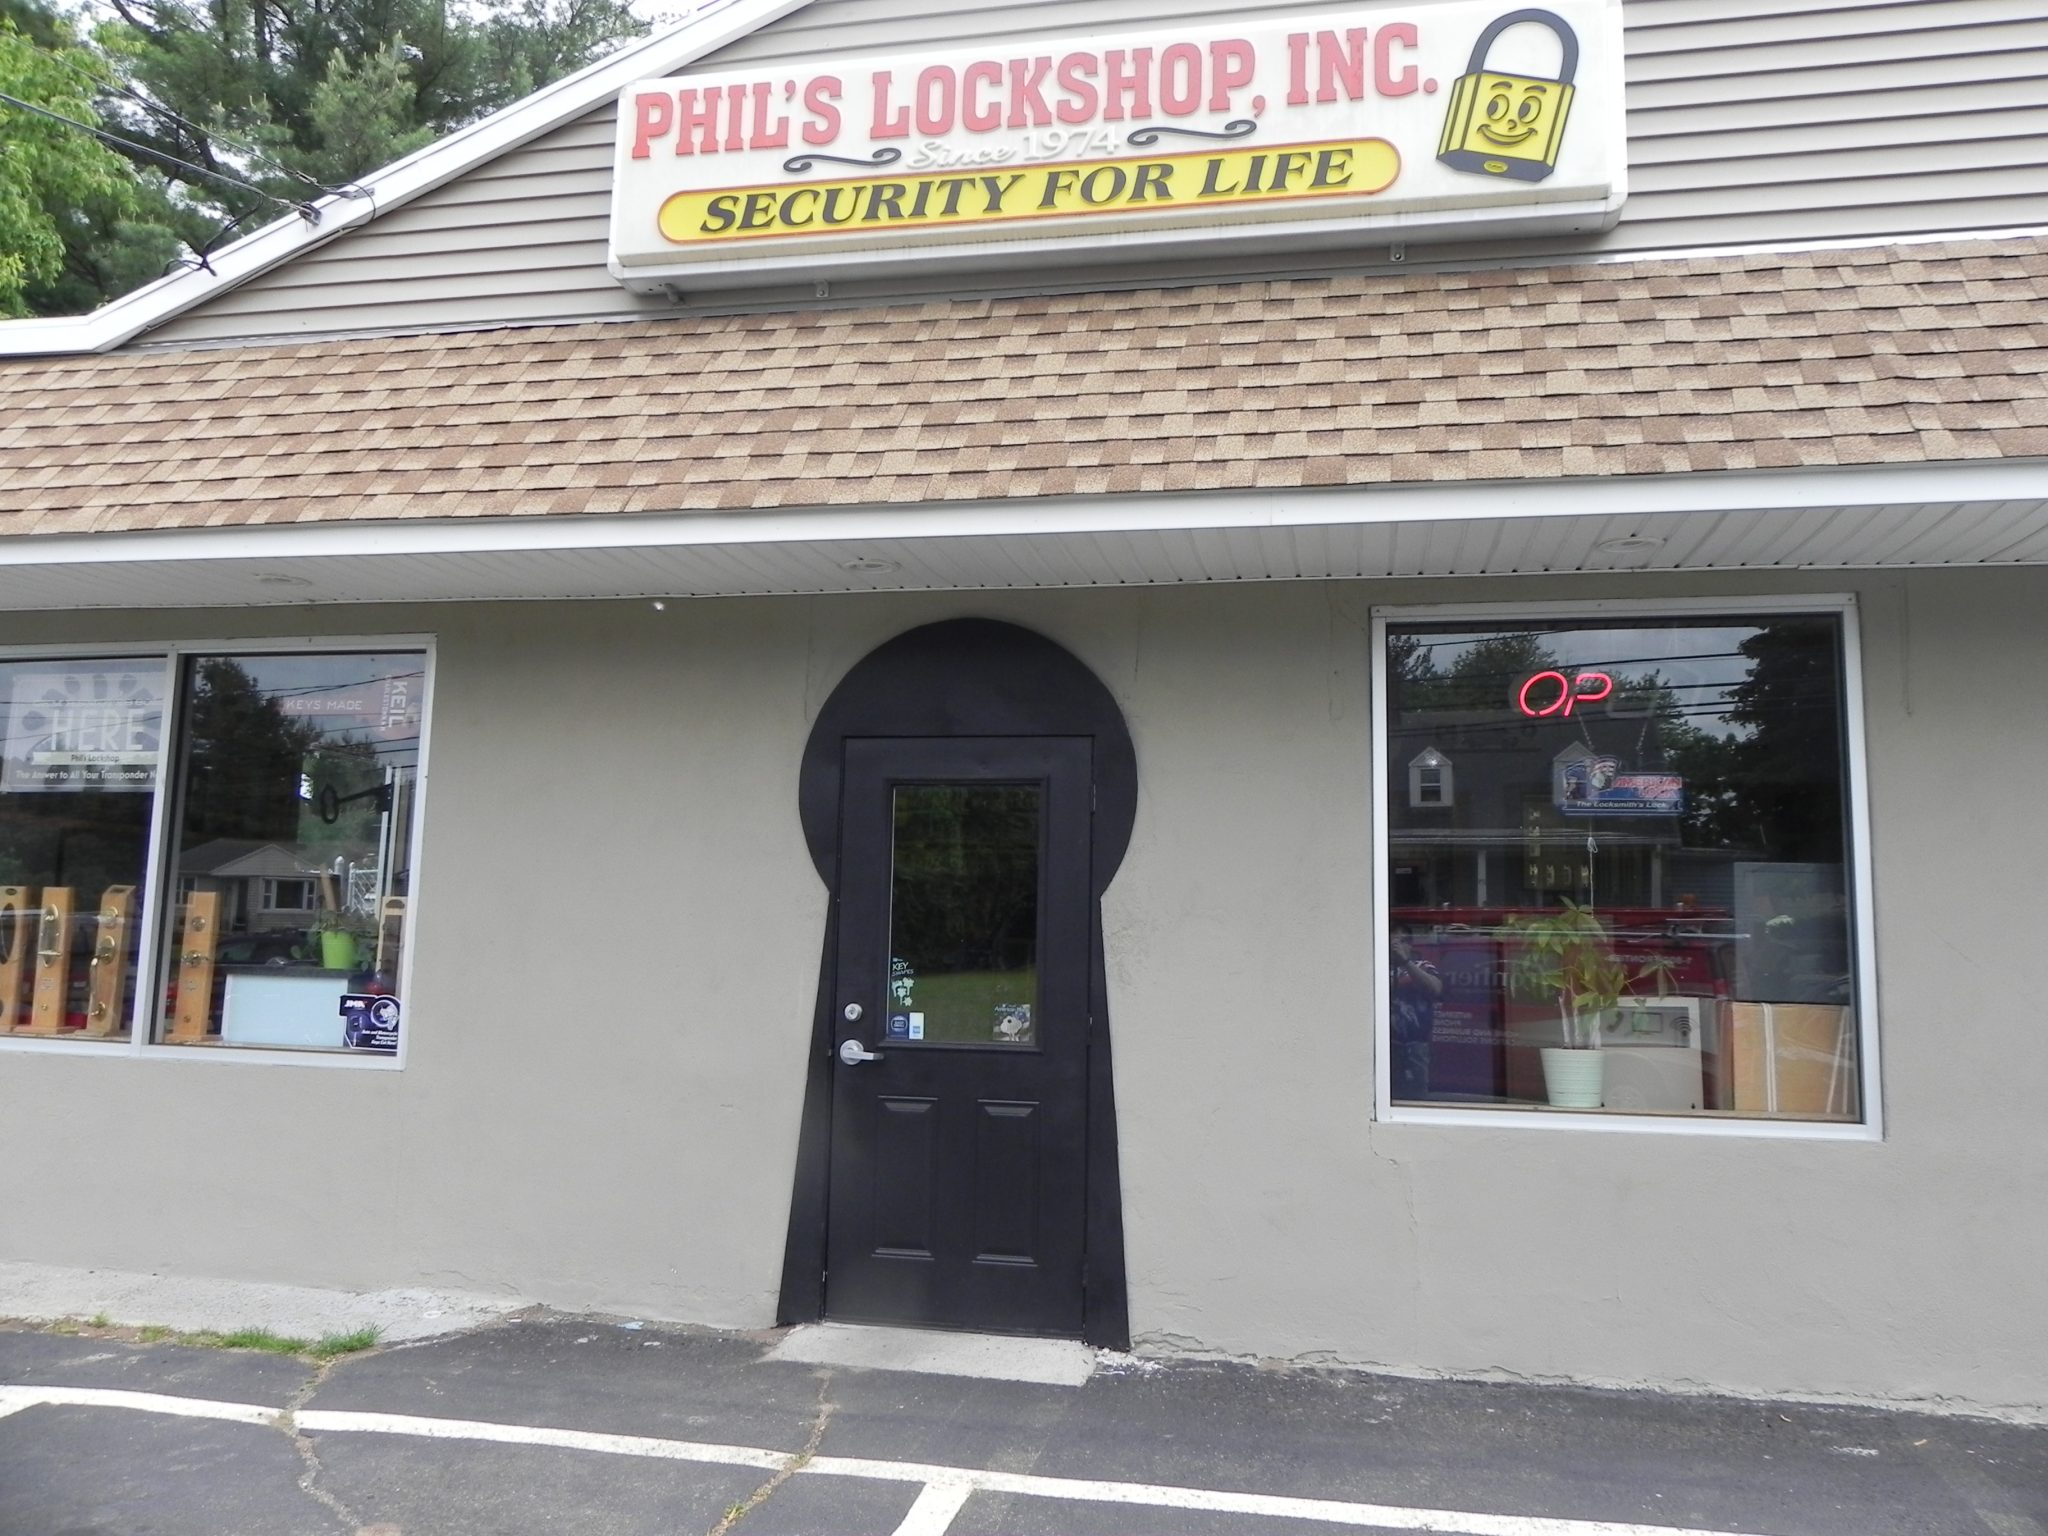 Phil's Lockshop in Meriden